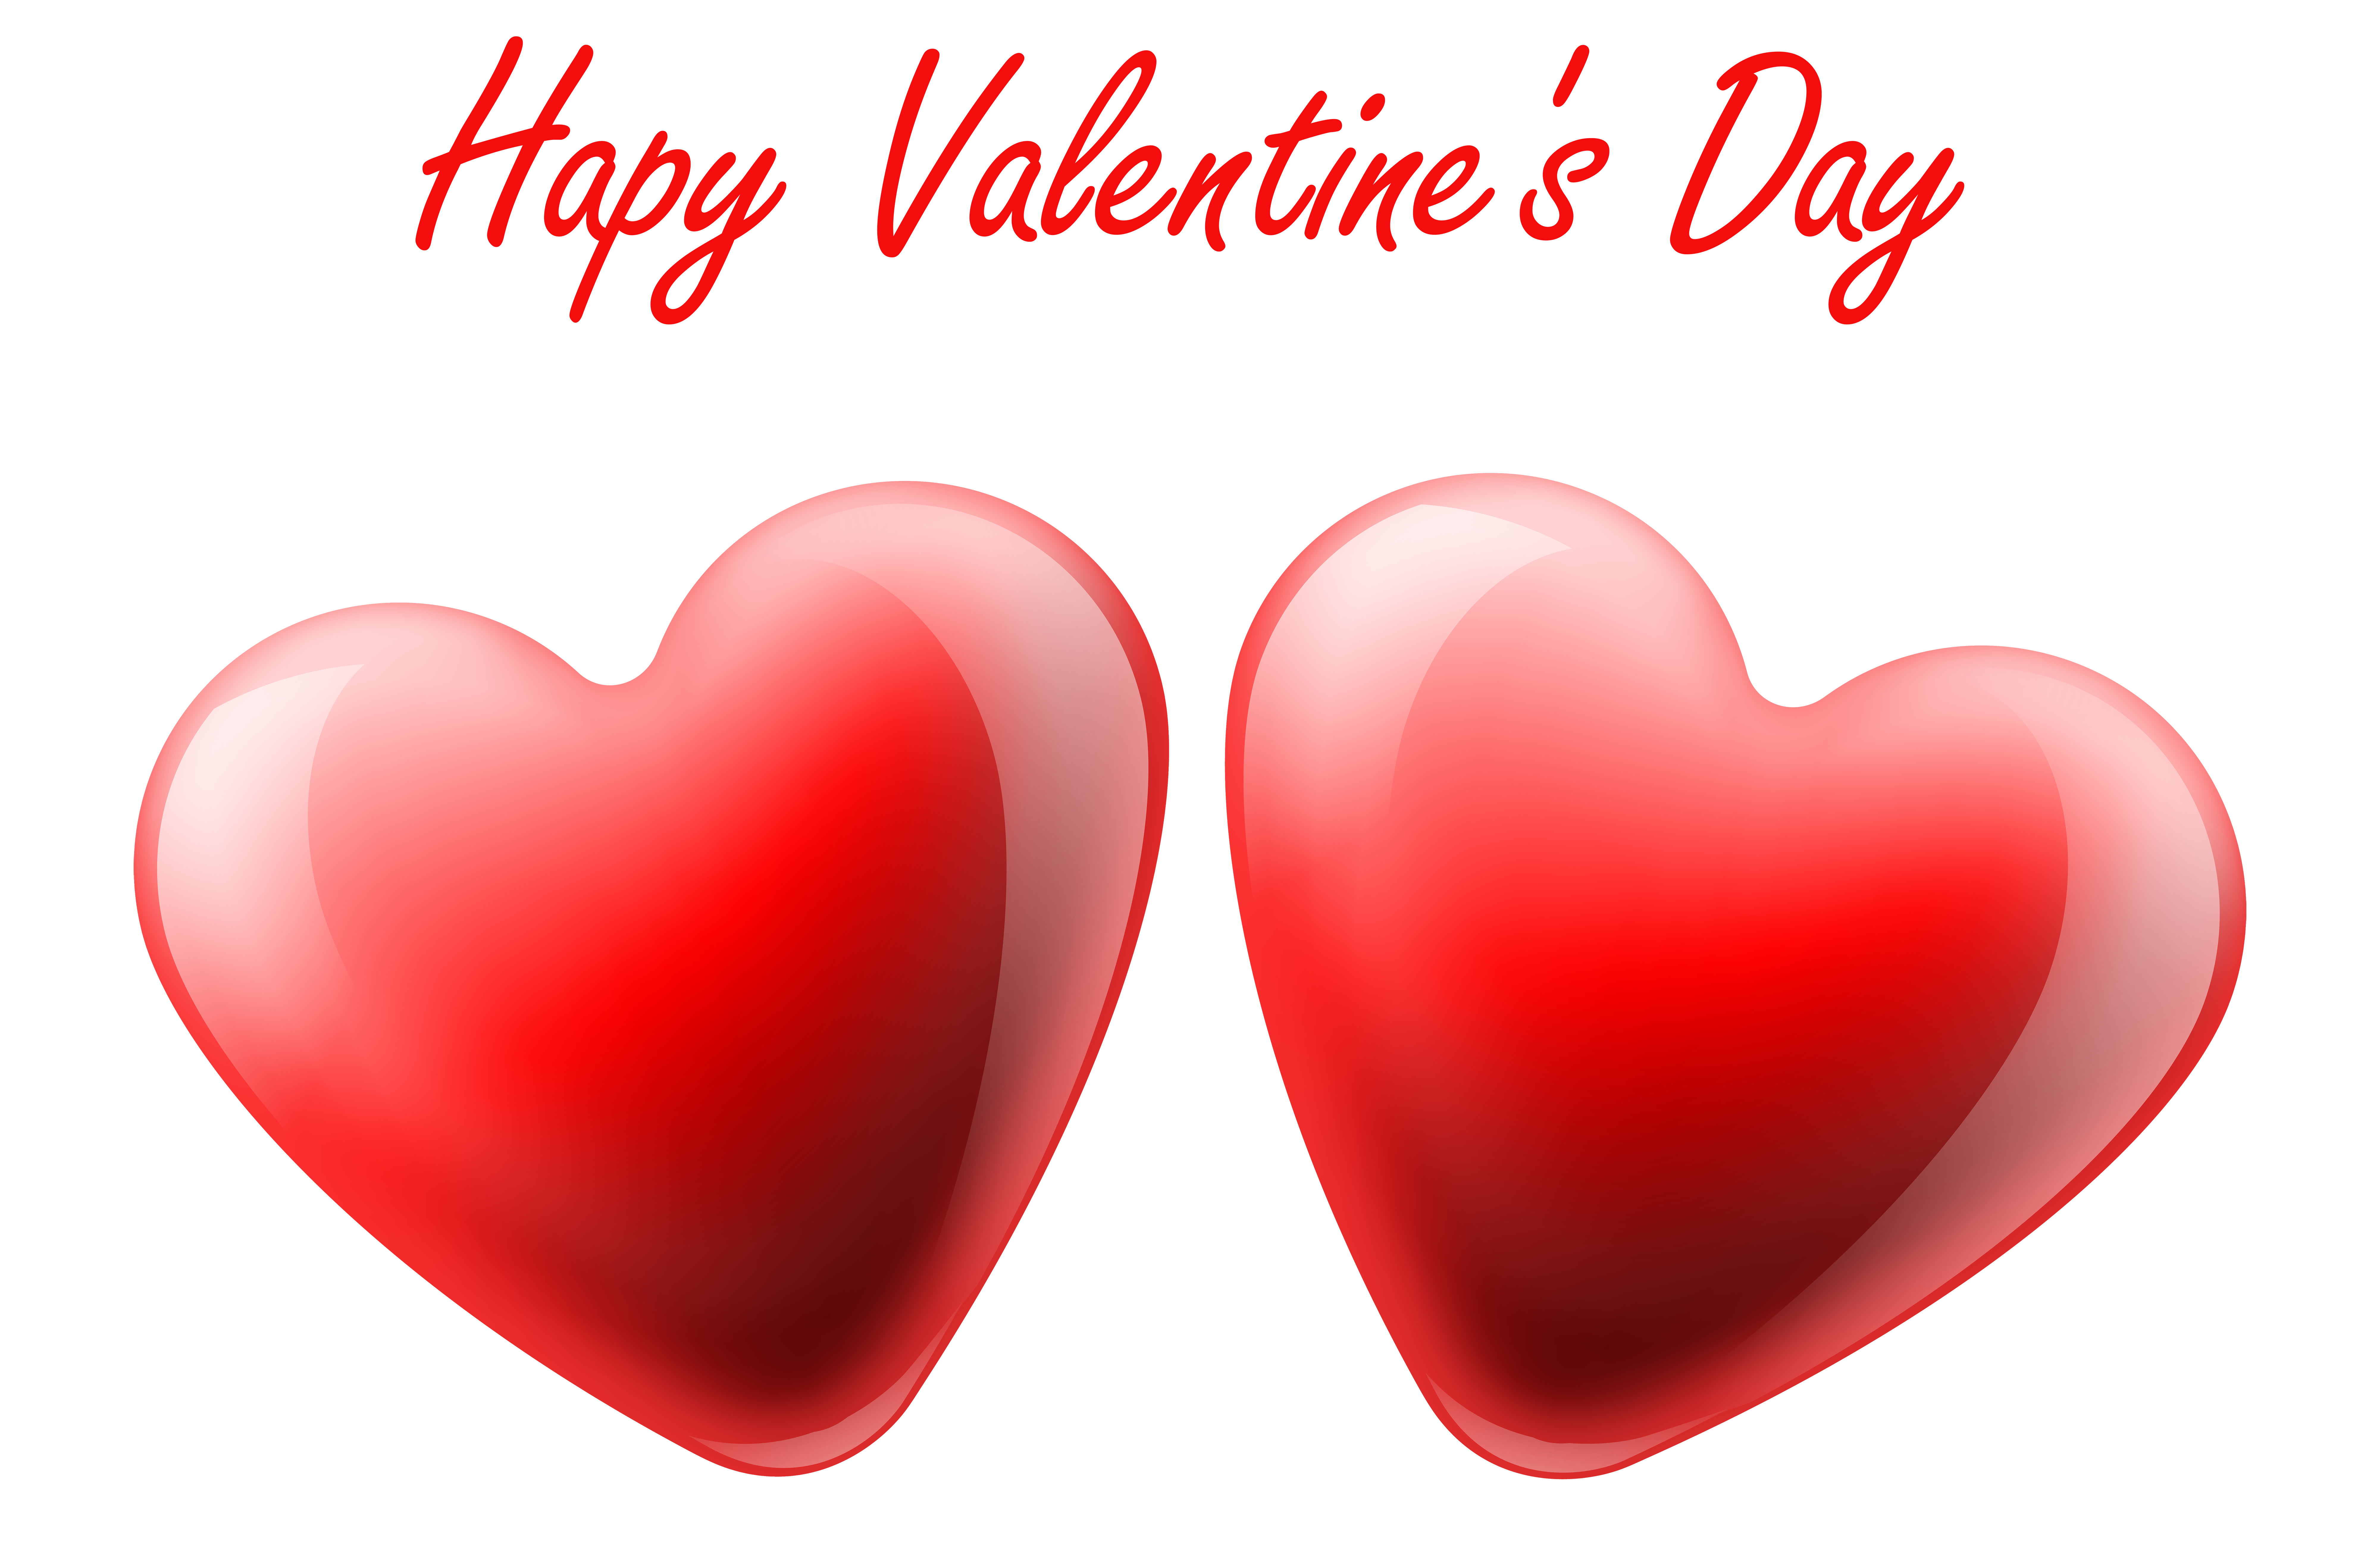 8000x5187 Happy Valentine's Day Hearts Transparent Png Clip Art Image